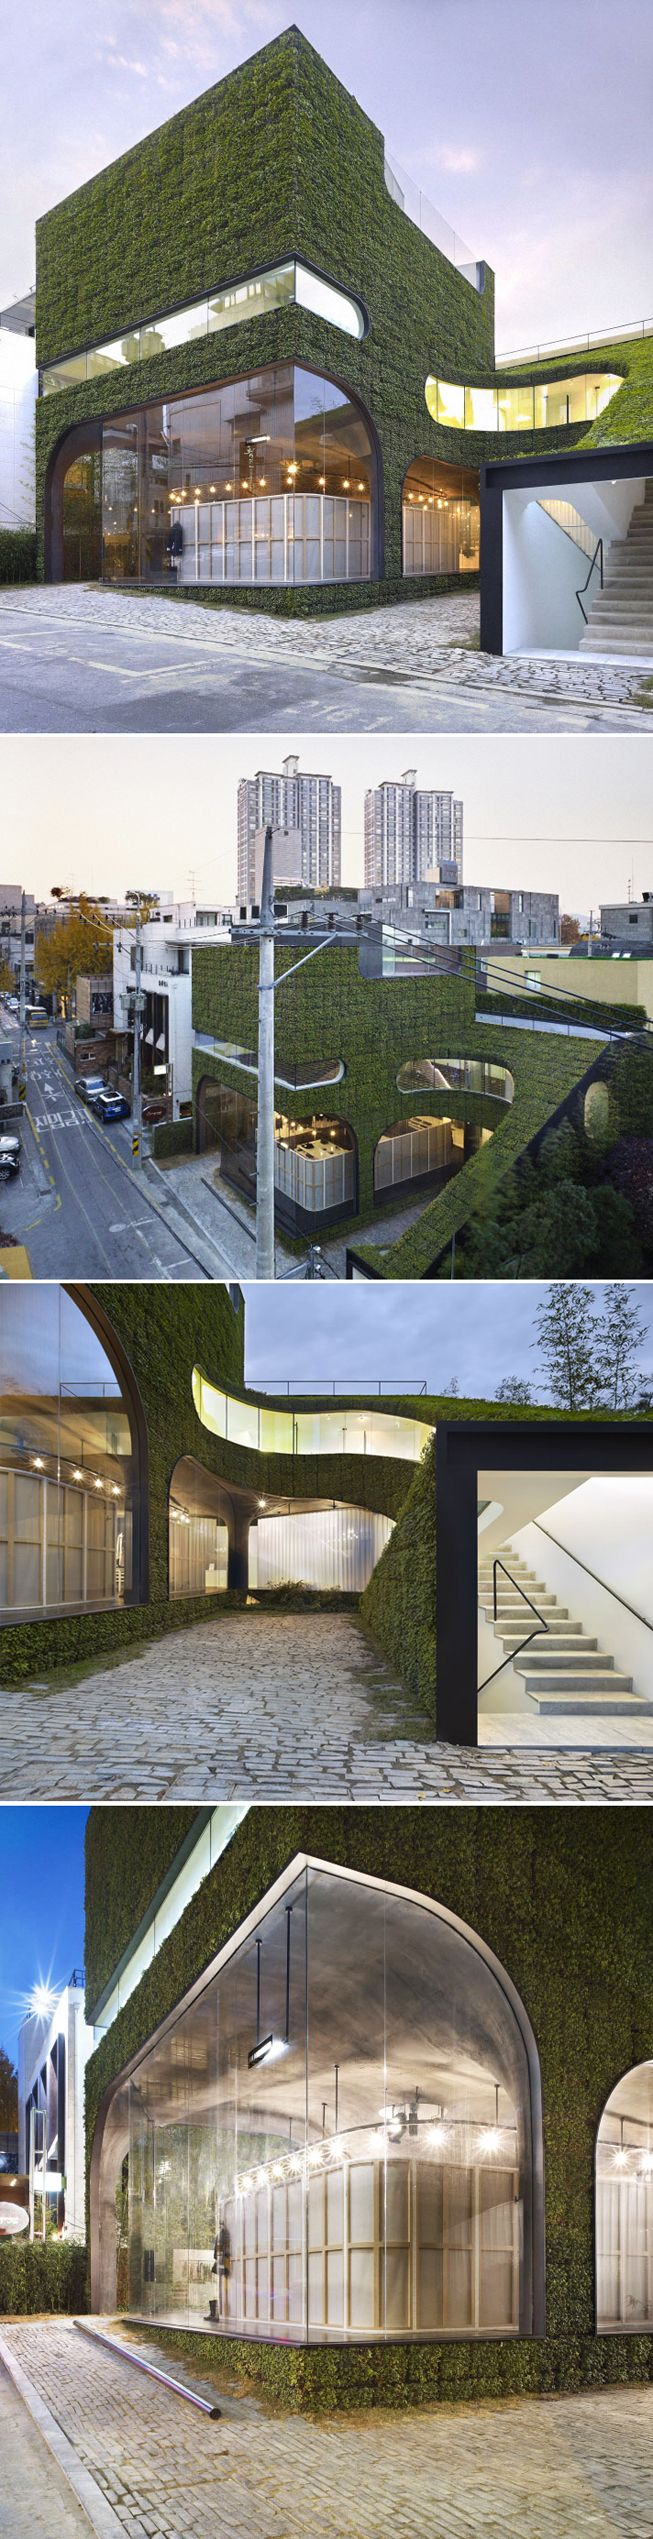 Ann Demeulemeester Shop by Mass Studies_Building-to-Land Ratio: 58.44% • Floor Area Ratio: 119.76% • Building Scope: 3F, B1 • Structure: RC • Finish: Vertical garden (Pachysandra terminalis), Exposed color concrete